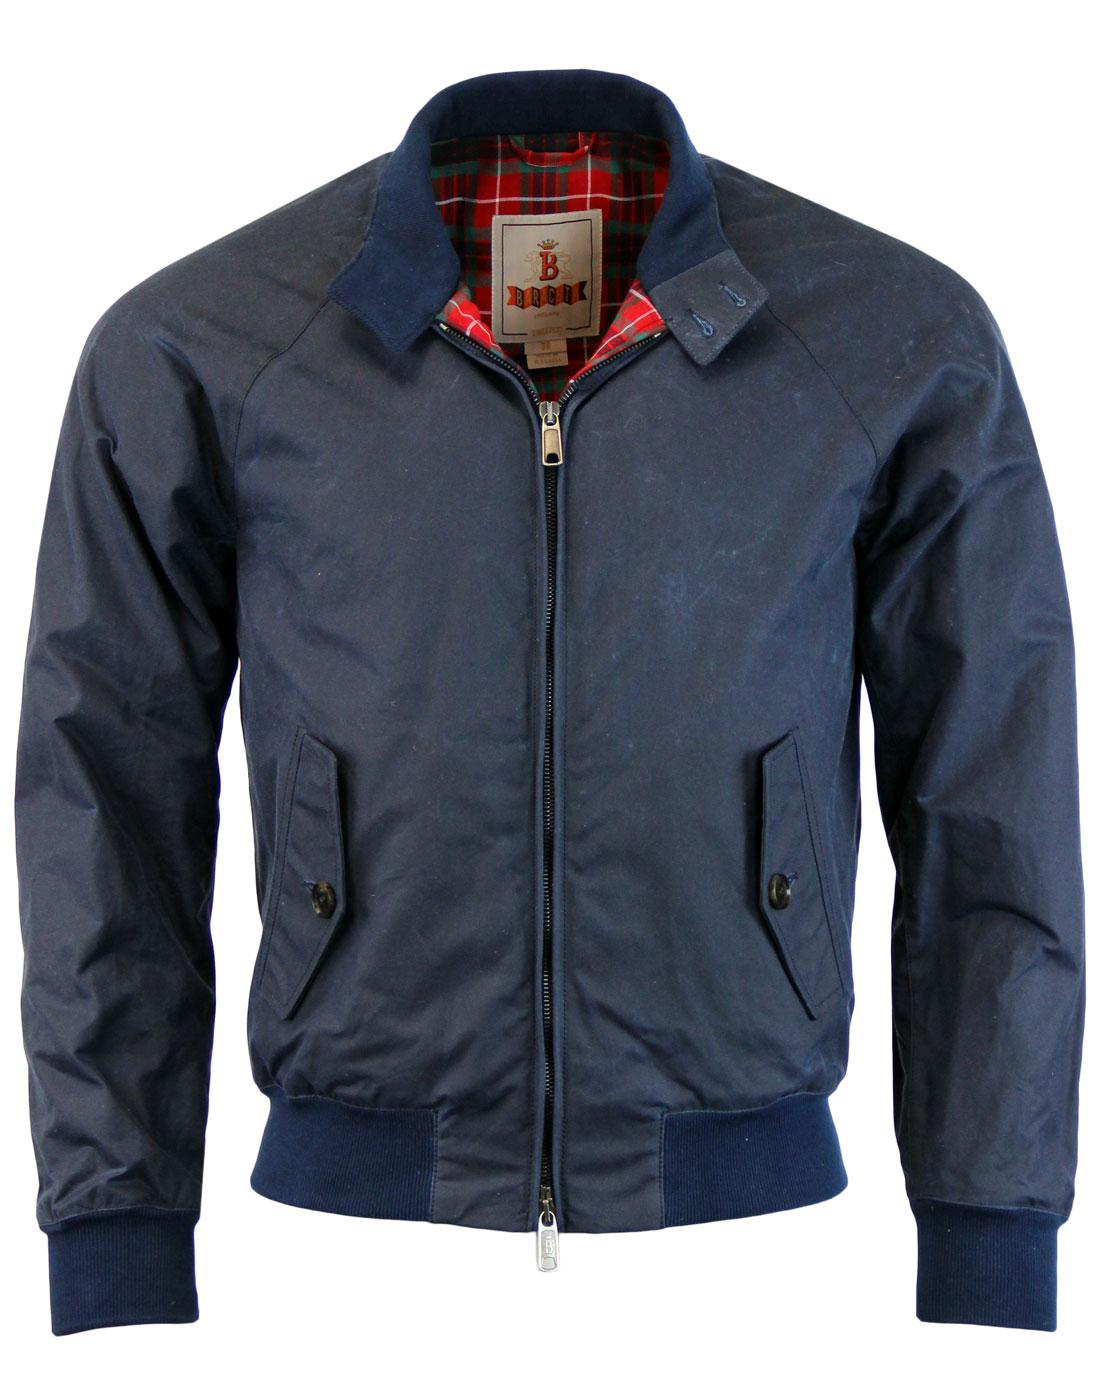 BARACUTA G9 Winter 60s Mod Waxed Cotton Harrington